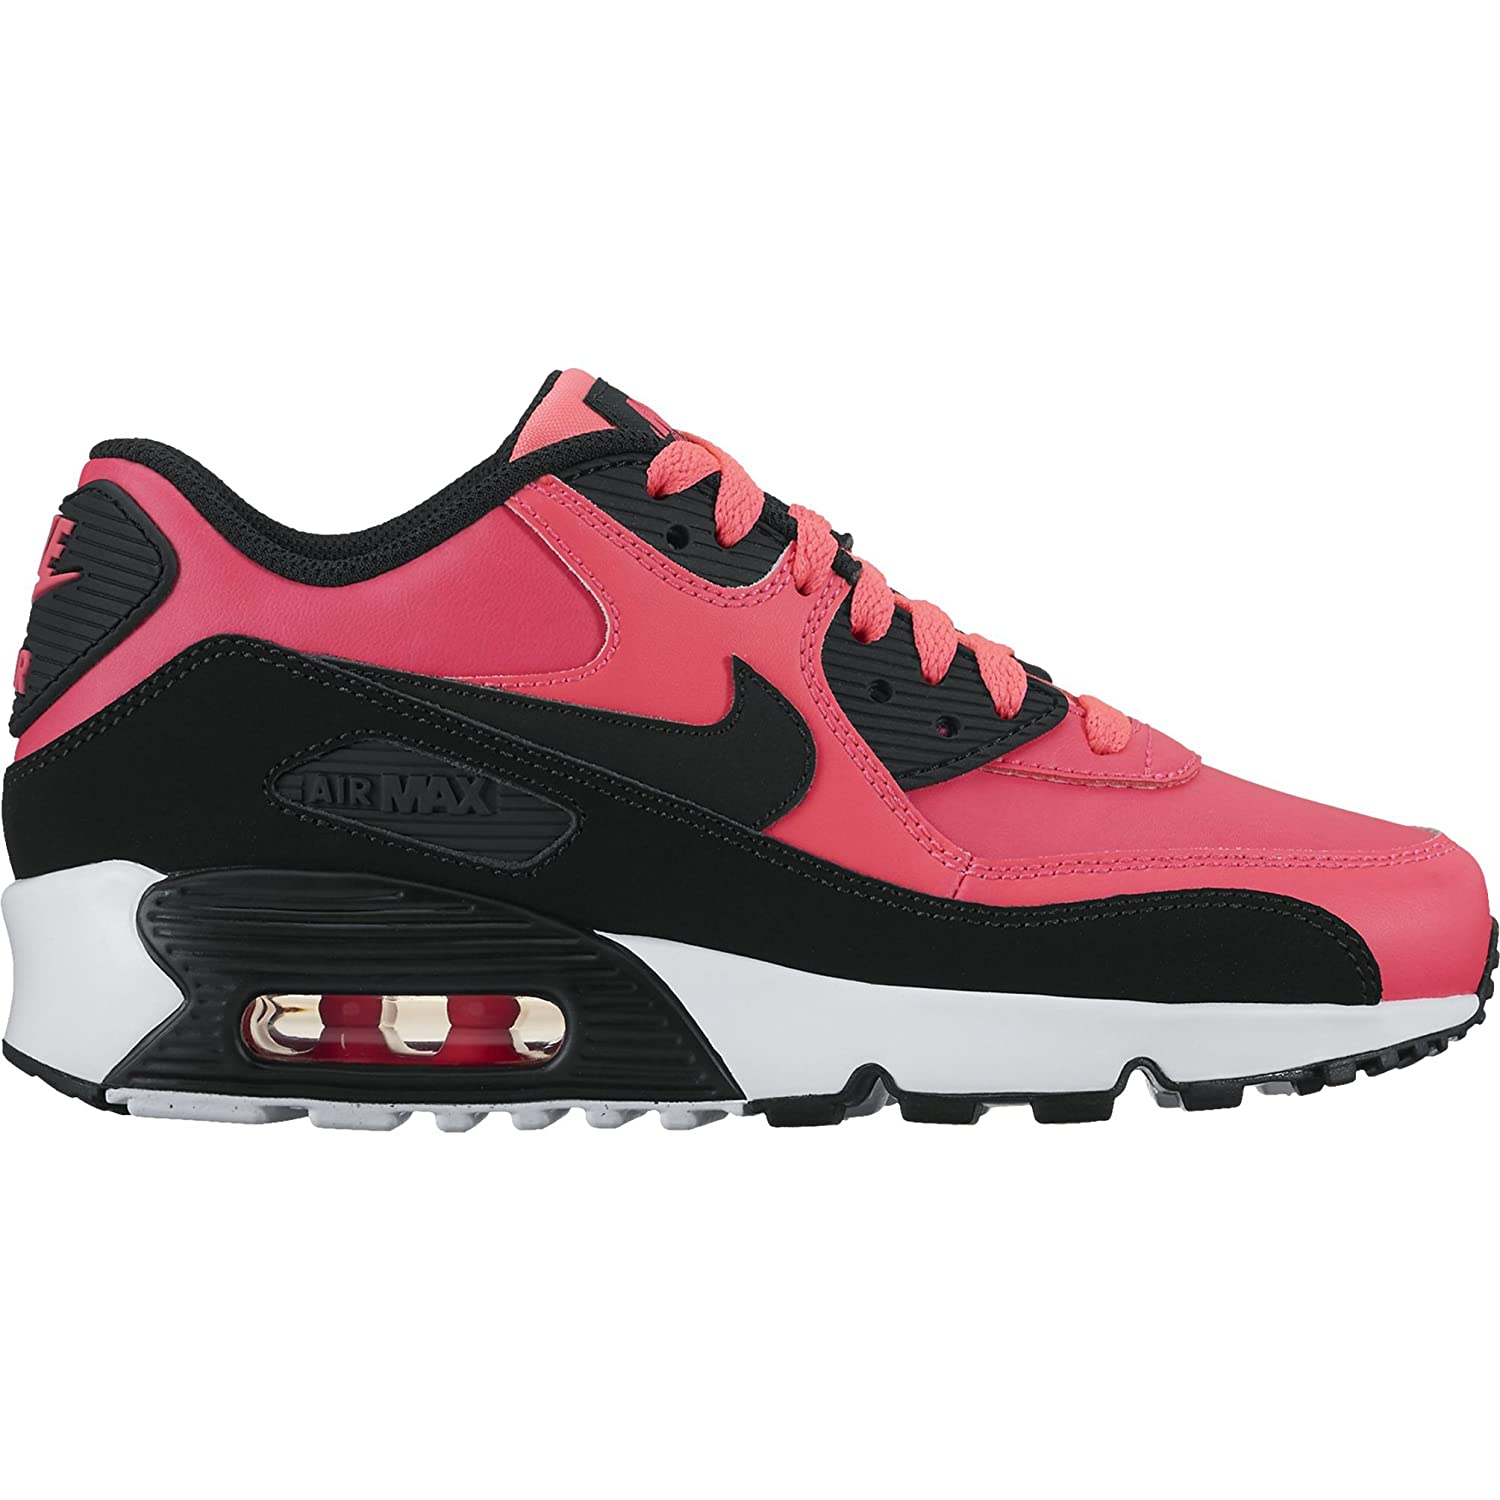 20346c92b2 Amazon.com | Nike Air Max 90 LTR Big Kid's Shoes Racer Pink/Black/White  833376-600 (4 M US) | Running